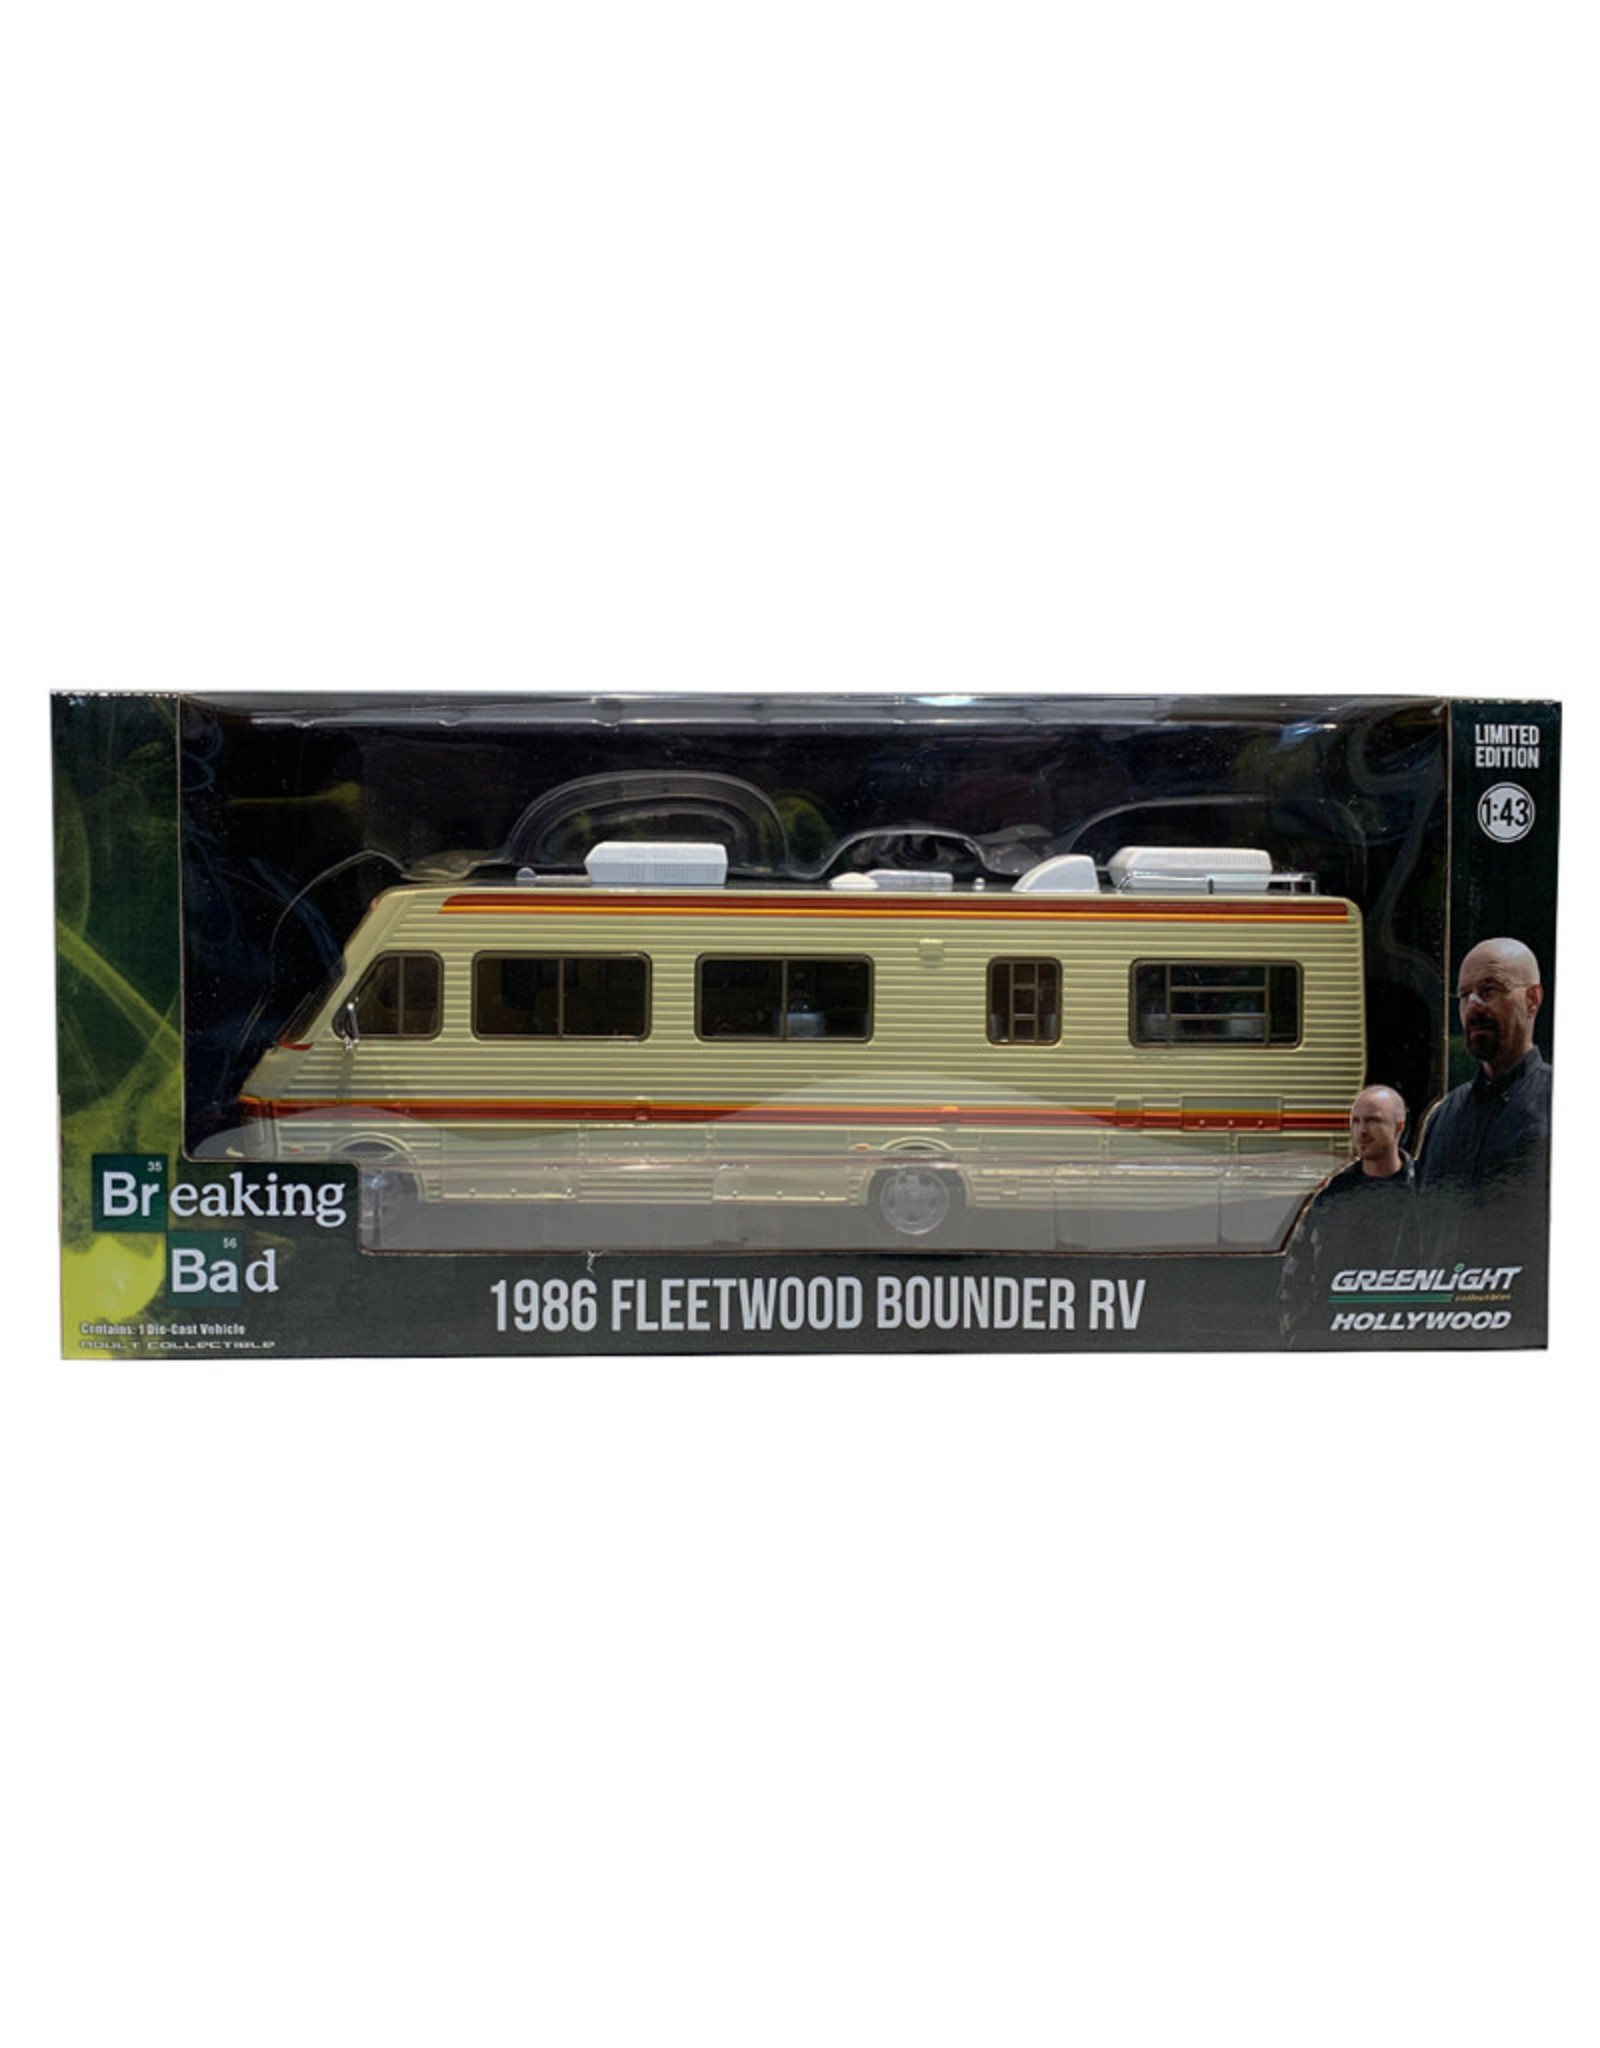 Breaking Bad ( Die Cast ) 1986 Fleetwood Bounder Rv